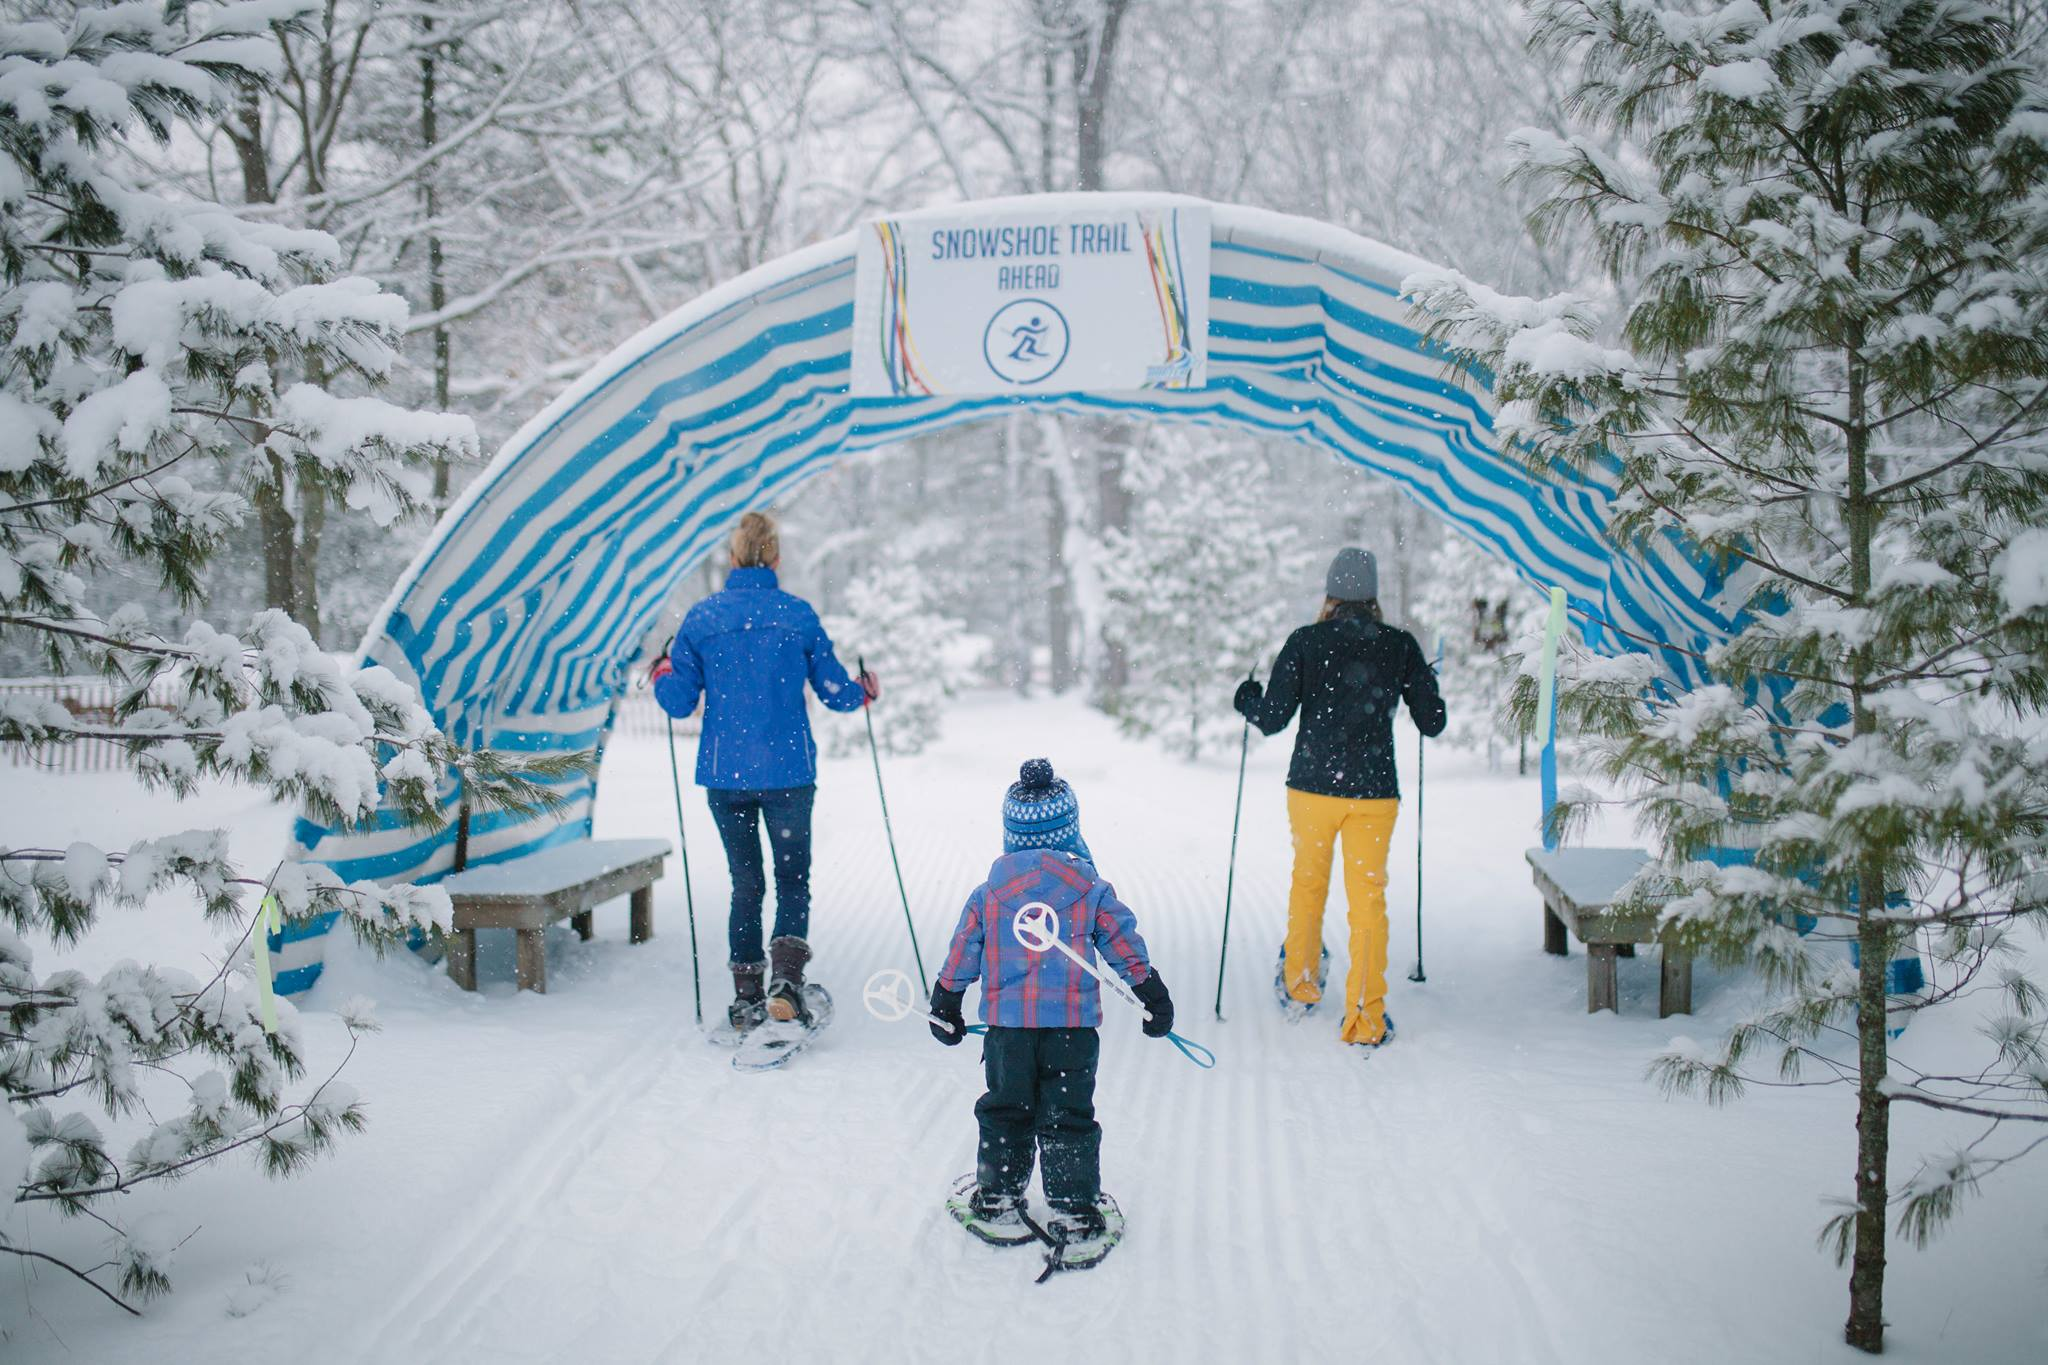 People on the Snowshoe Trail at the Muskegon Winter Sports Complex